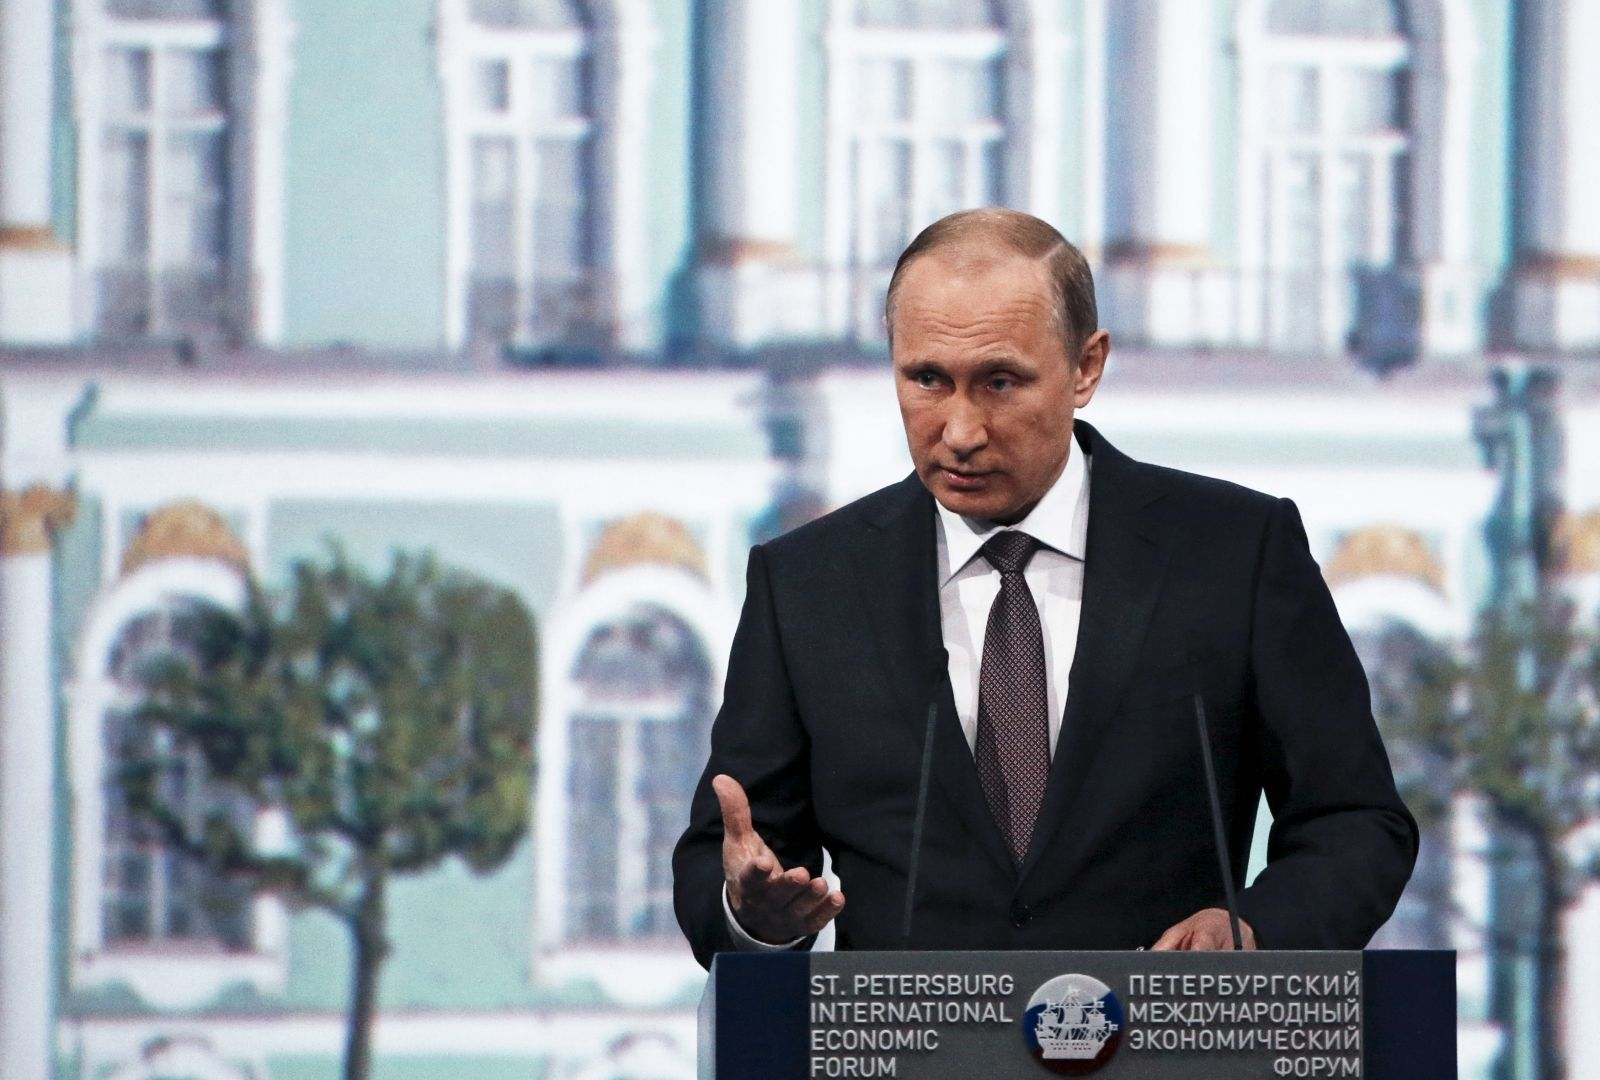 Russia questions Baltic states independence